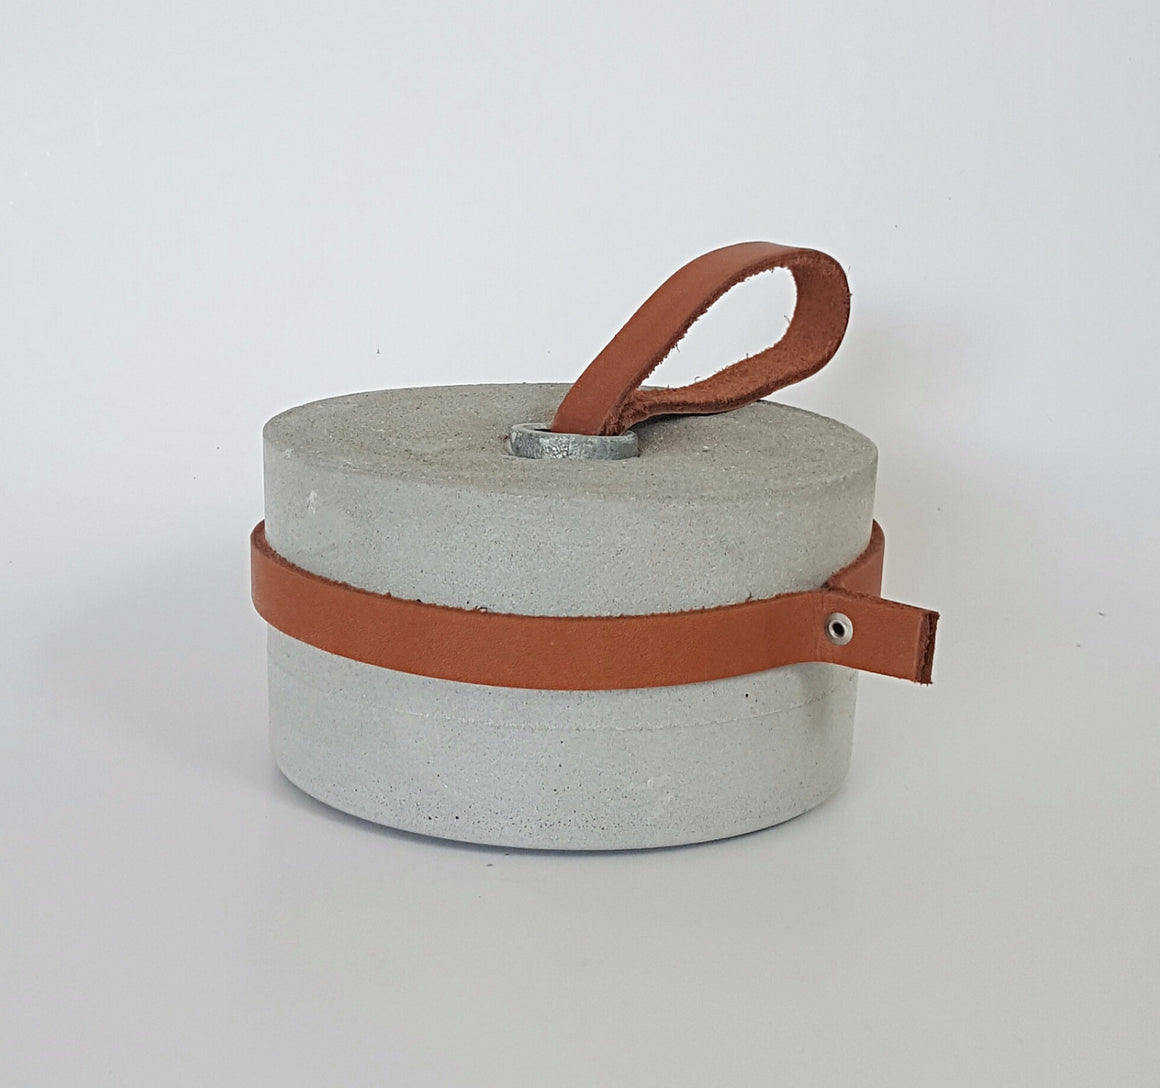 Concrete & leather doorstop